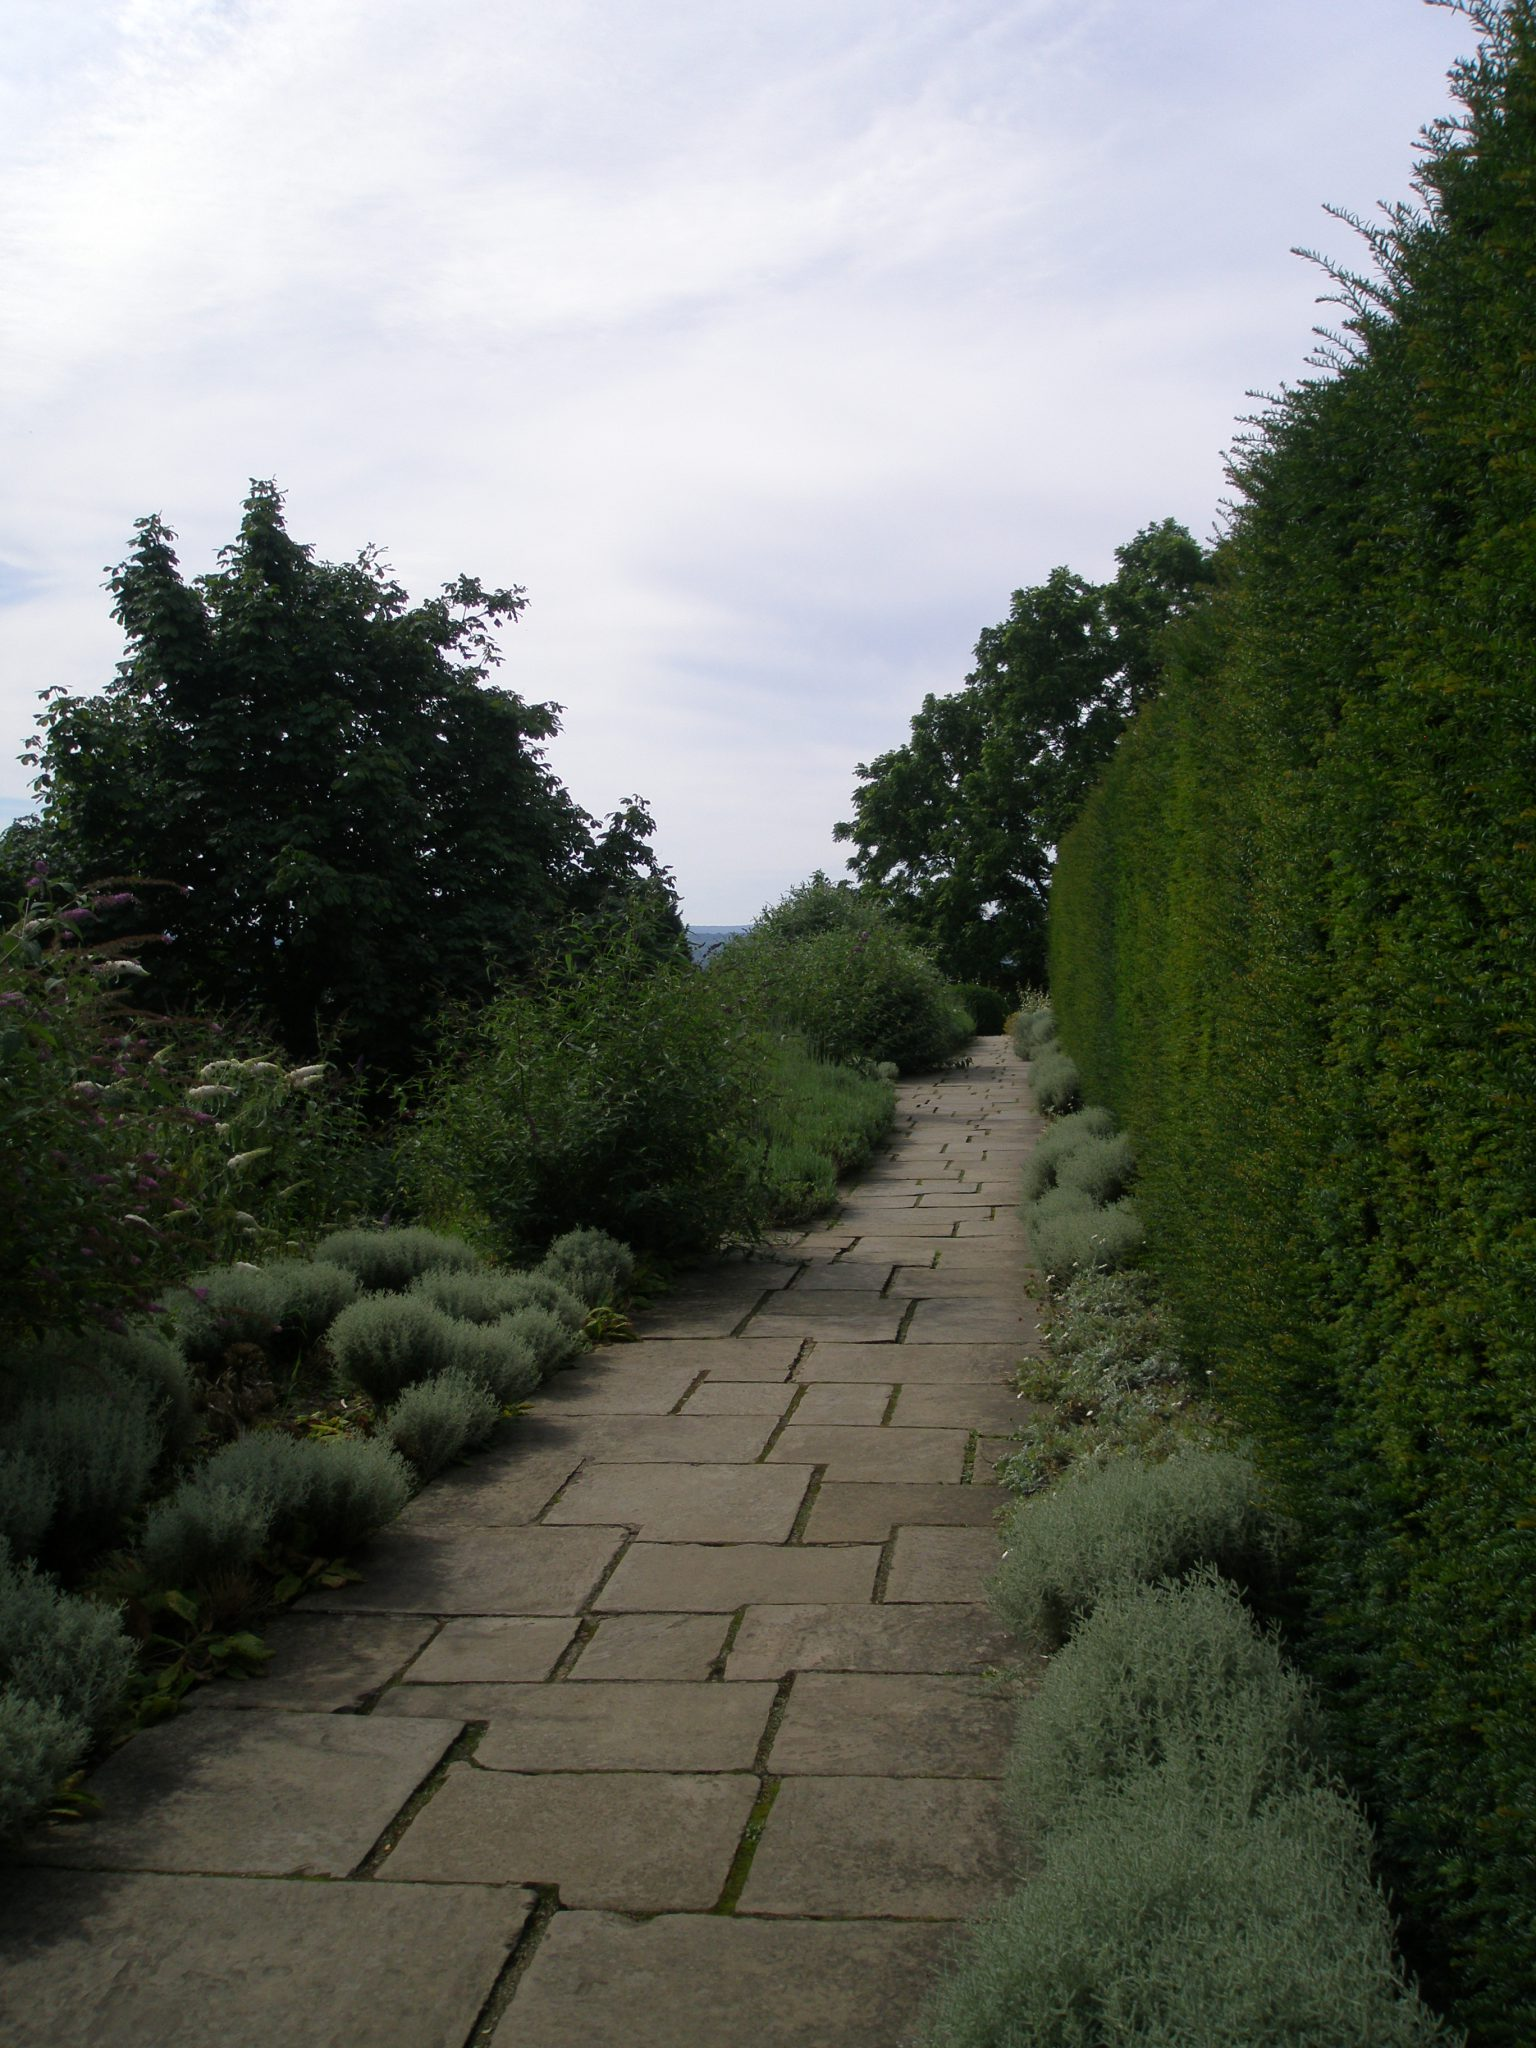 The Butterfly House Walk begins at the southwest corner of the Terrace Lawn, and is lined on the right by a high yew hedge. To the left, the land slopes away to the Orchard. Clementine planted these borders with buddleias to lure the butterflies that Churchill loved to see in the garden. Worried about the decline in Britain's native species, Winston called in a butterfly breeding expert for advice on converting the summer-house at the end of this walk into a place to incubate butterfly larvae.